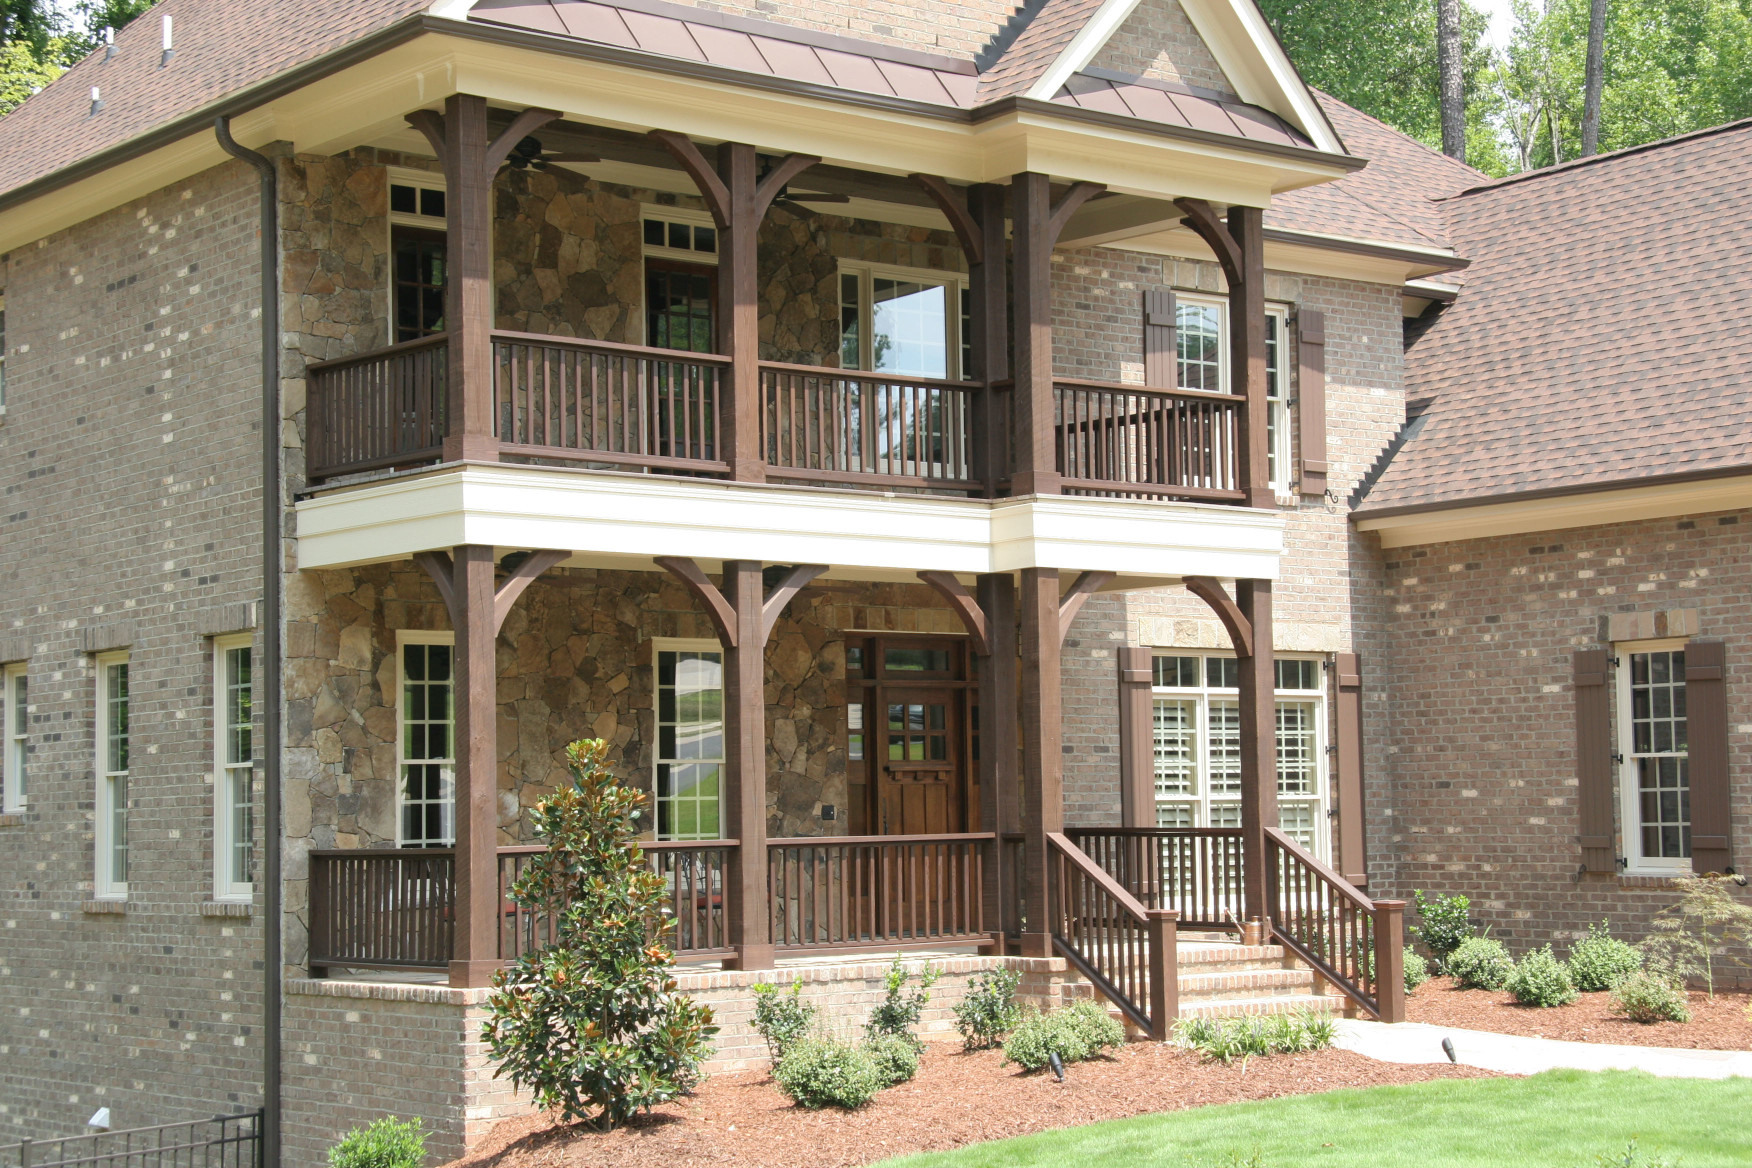 Our wood braces, posts and railing on this home create an old world feel on this two story front porch.